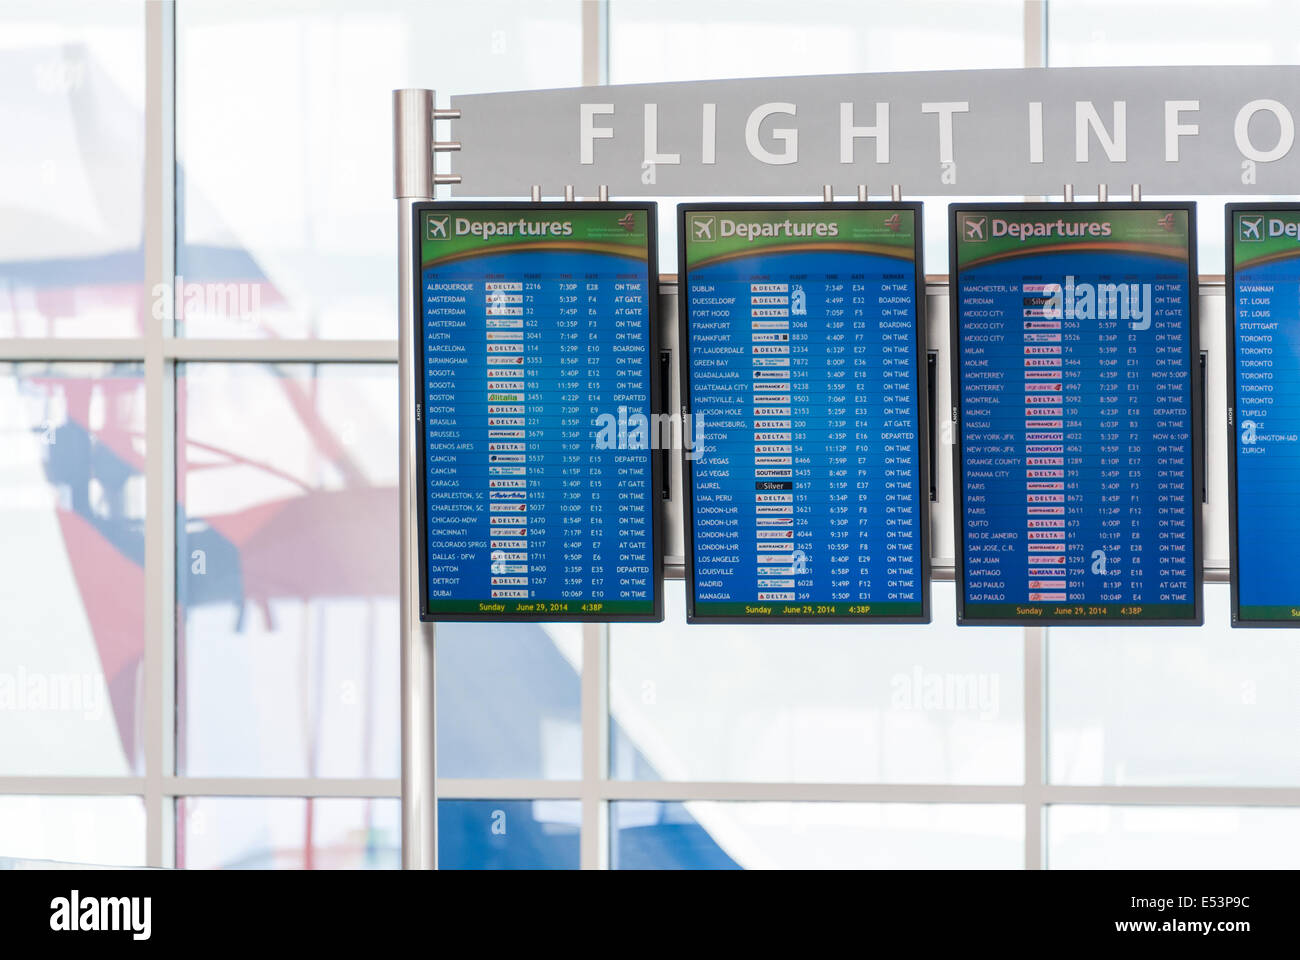 Flight info display with screens showing flight departures at the International Terminal of Atlanta International - Stock Image